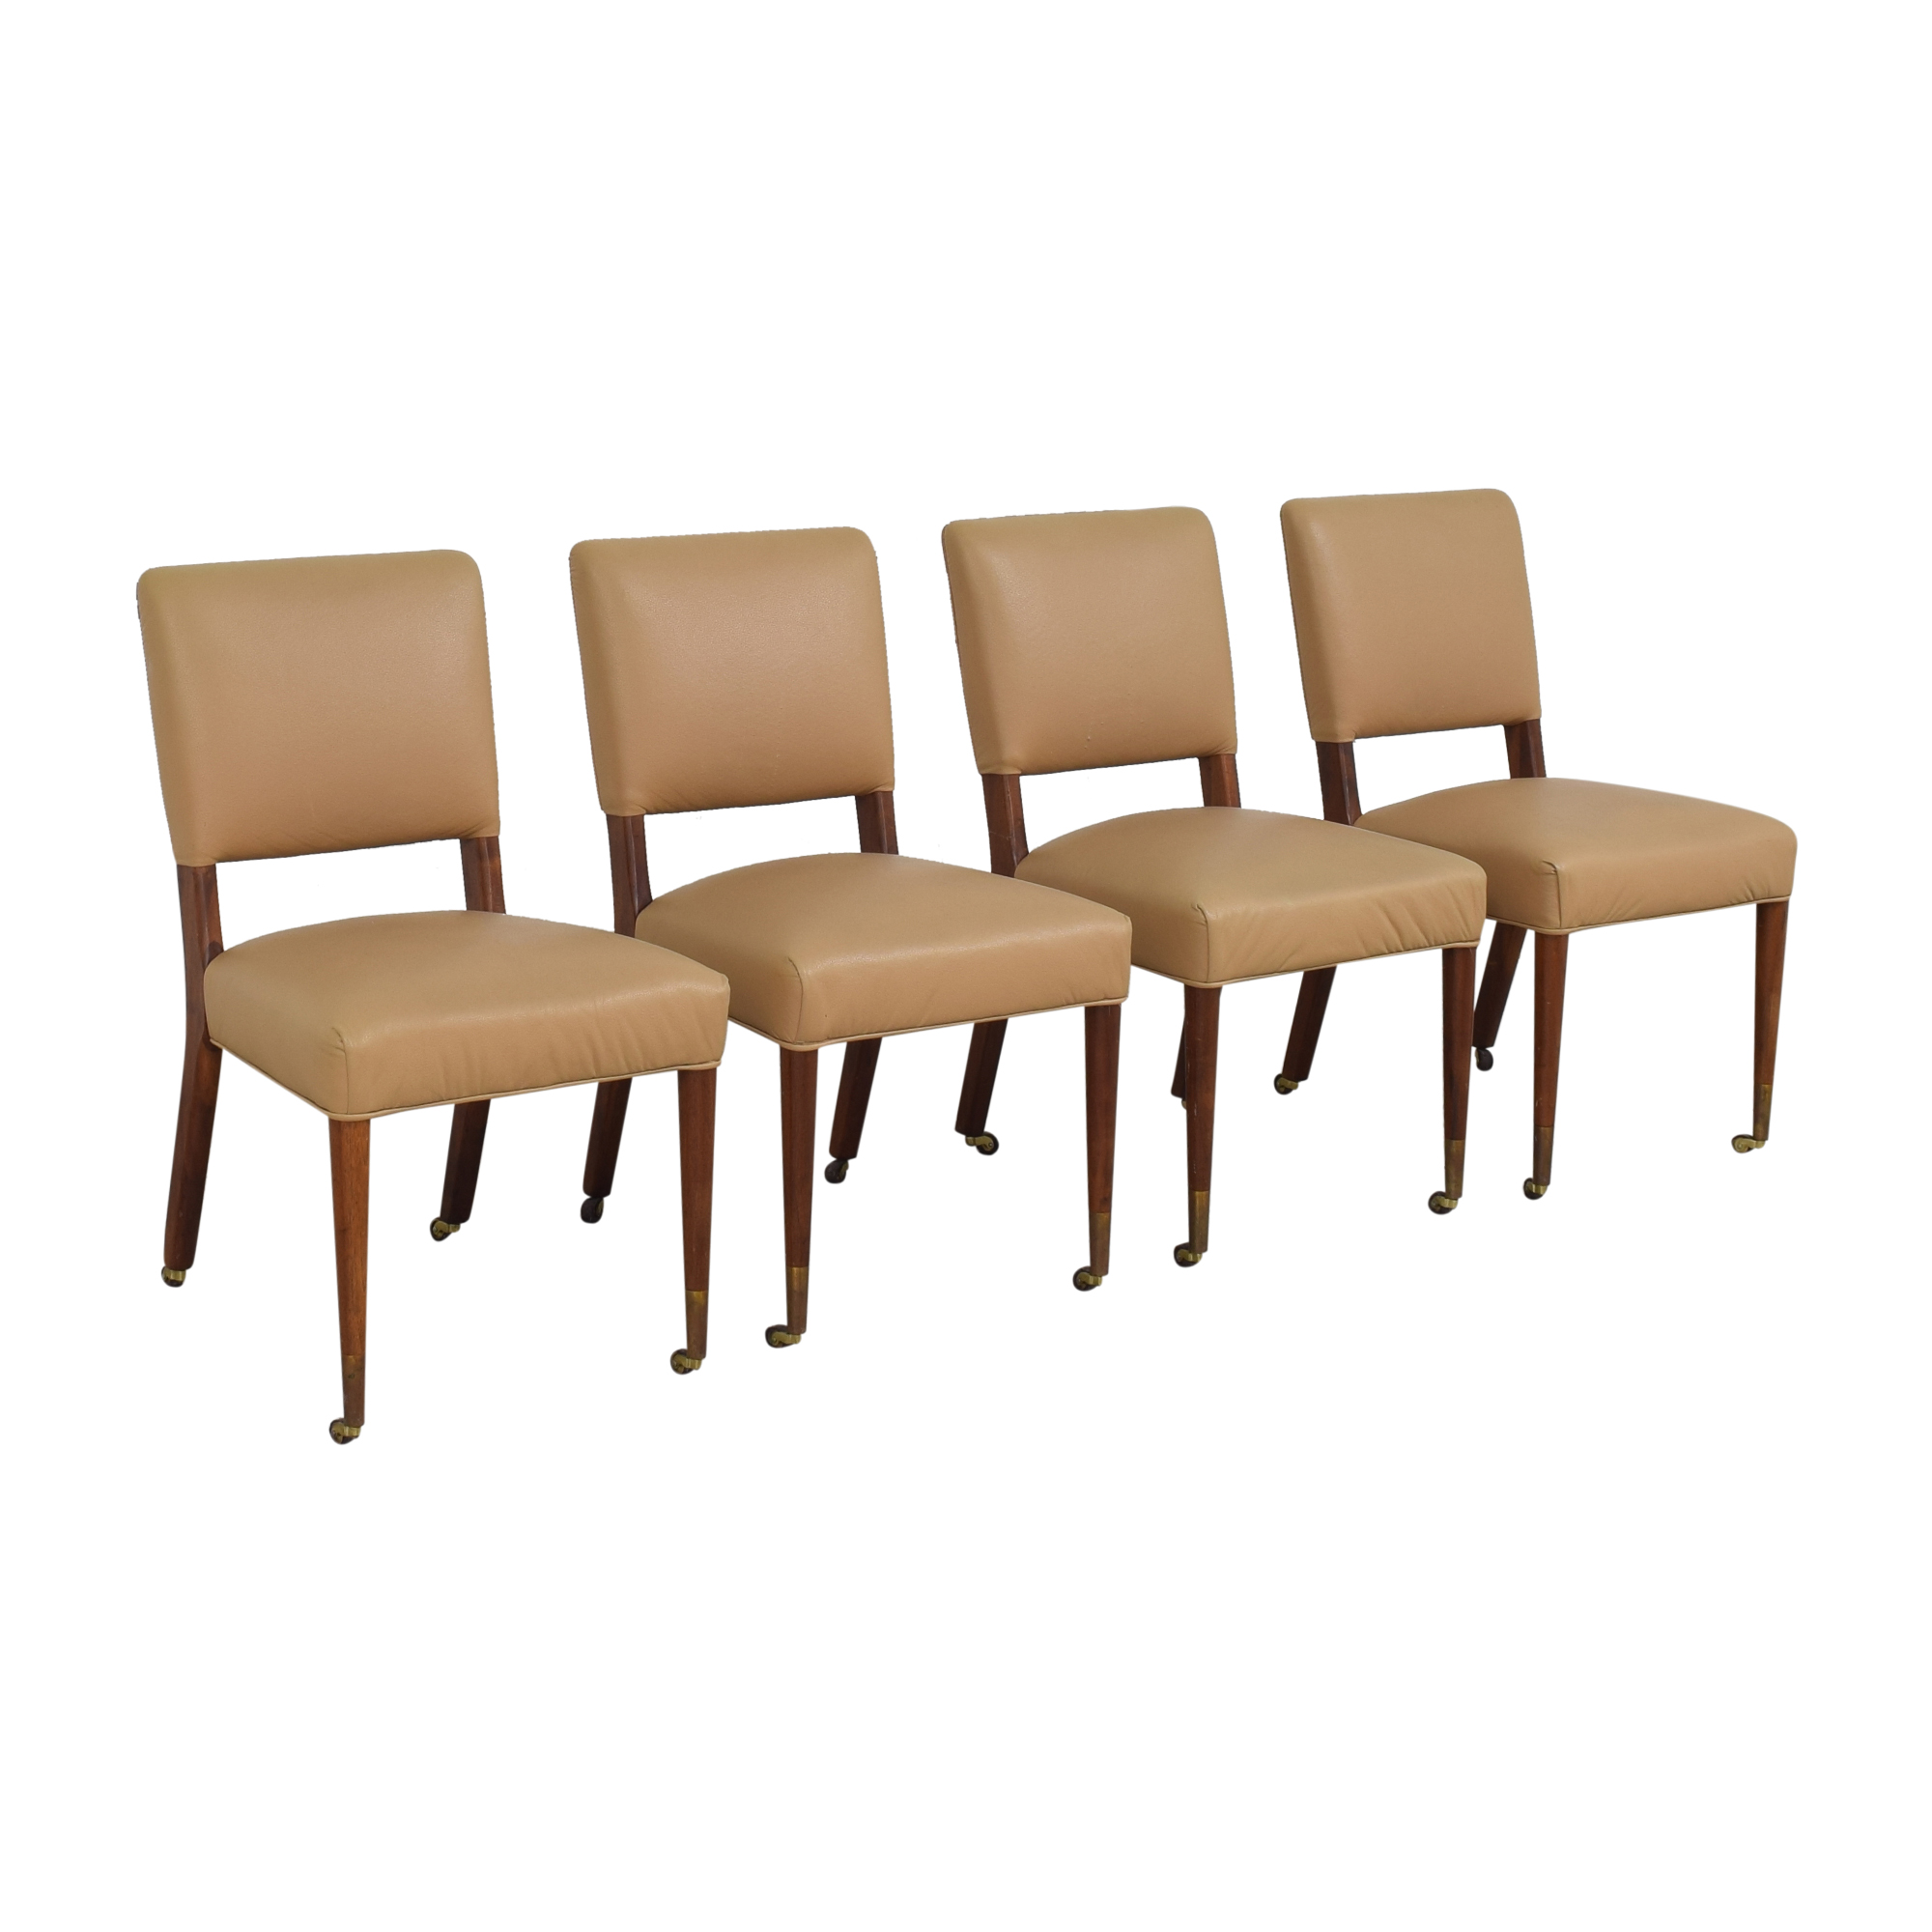 Upholstered Dining Chairs on Casters for sale